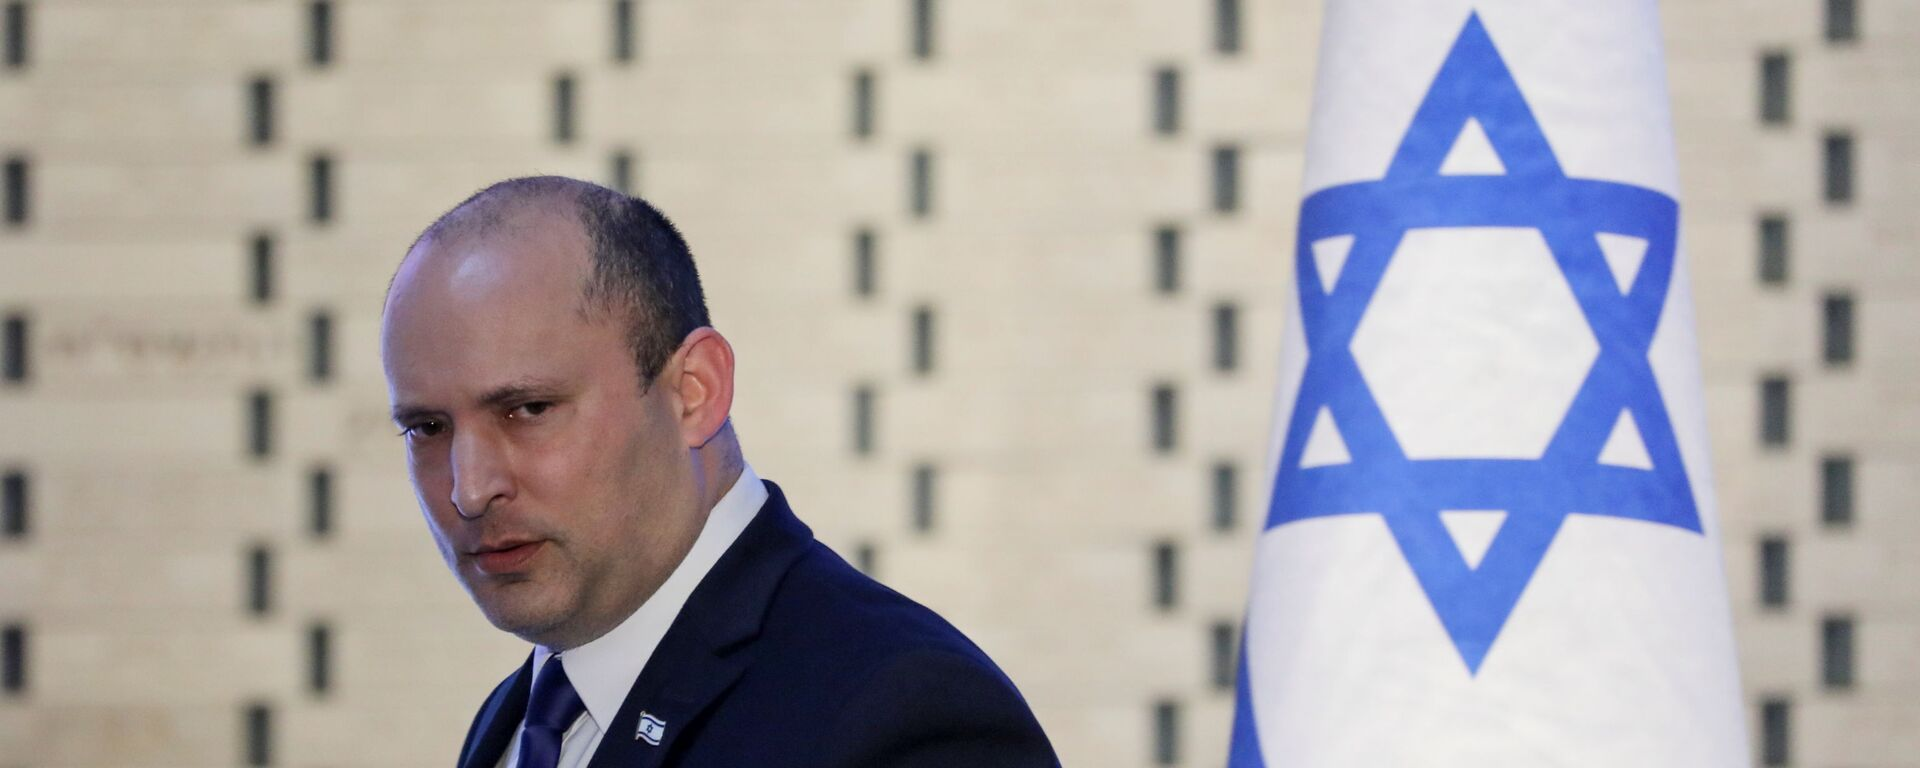 Israeli Prime Minister Naftali Bennett attends a memorial ceremony for soldiers who fell in the 2014 war with Gaza, at the Hall of Remembrance of Mount Herzl military cemetery in Jerusalem June 20, 2021 - Sputnik International, 1920, 22.07.2021